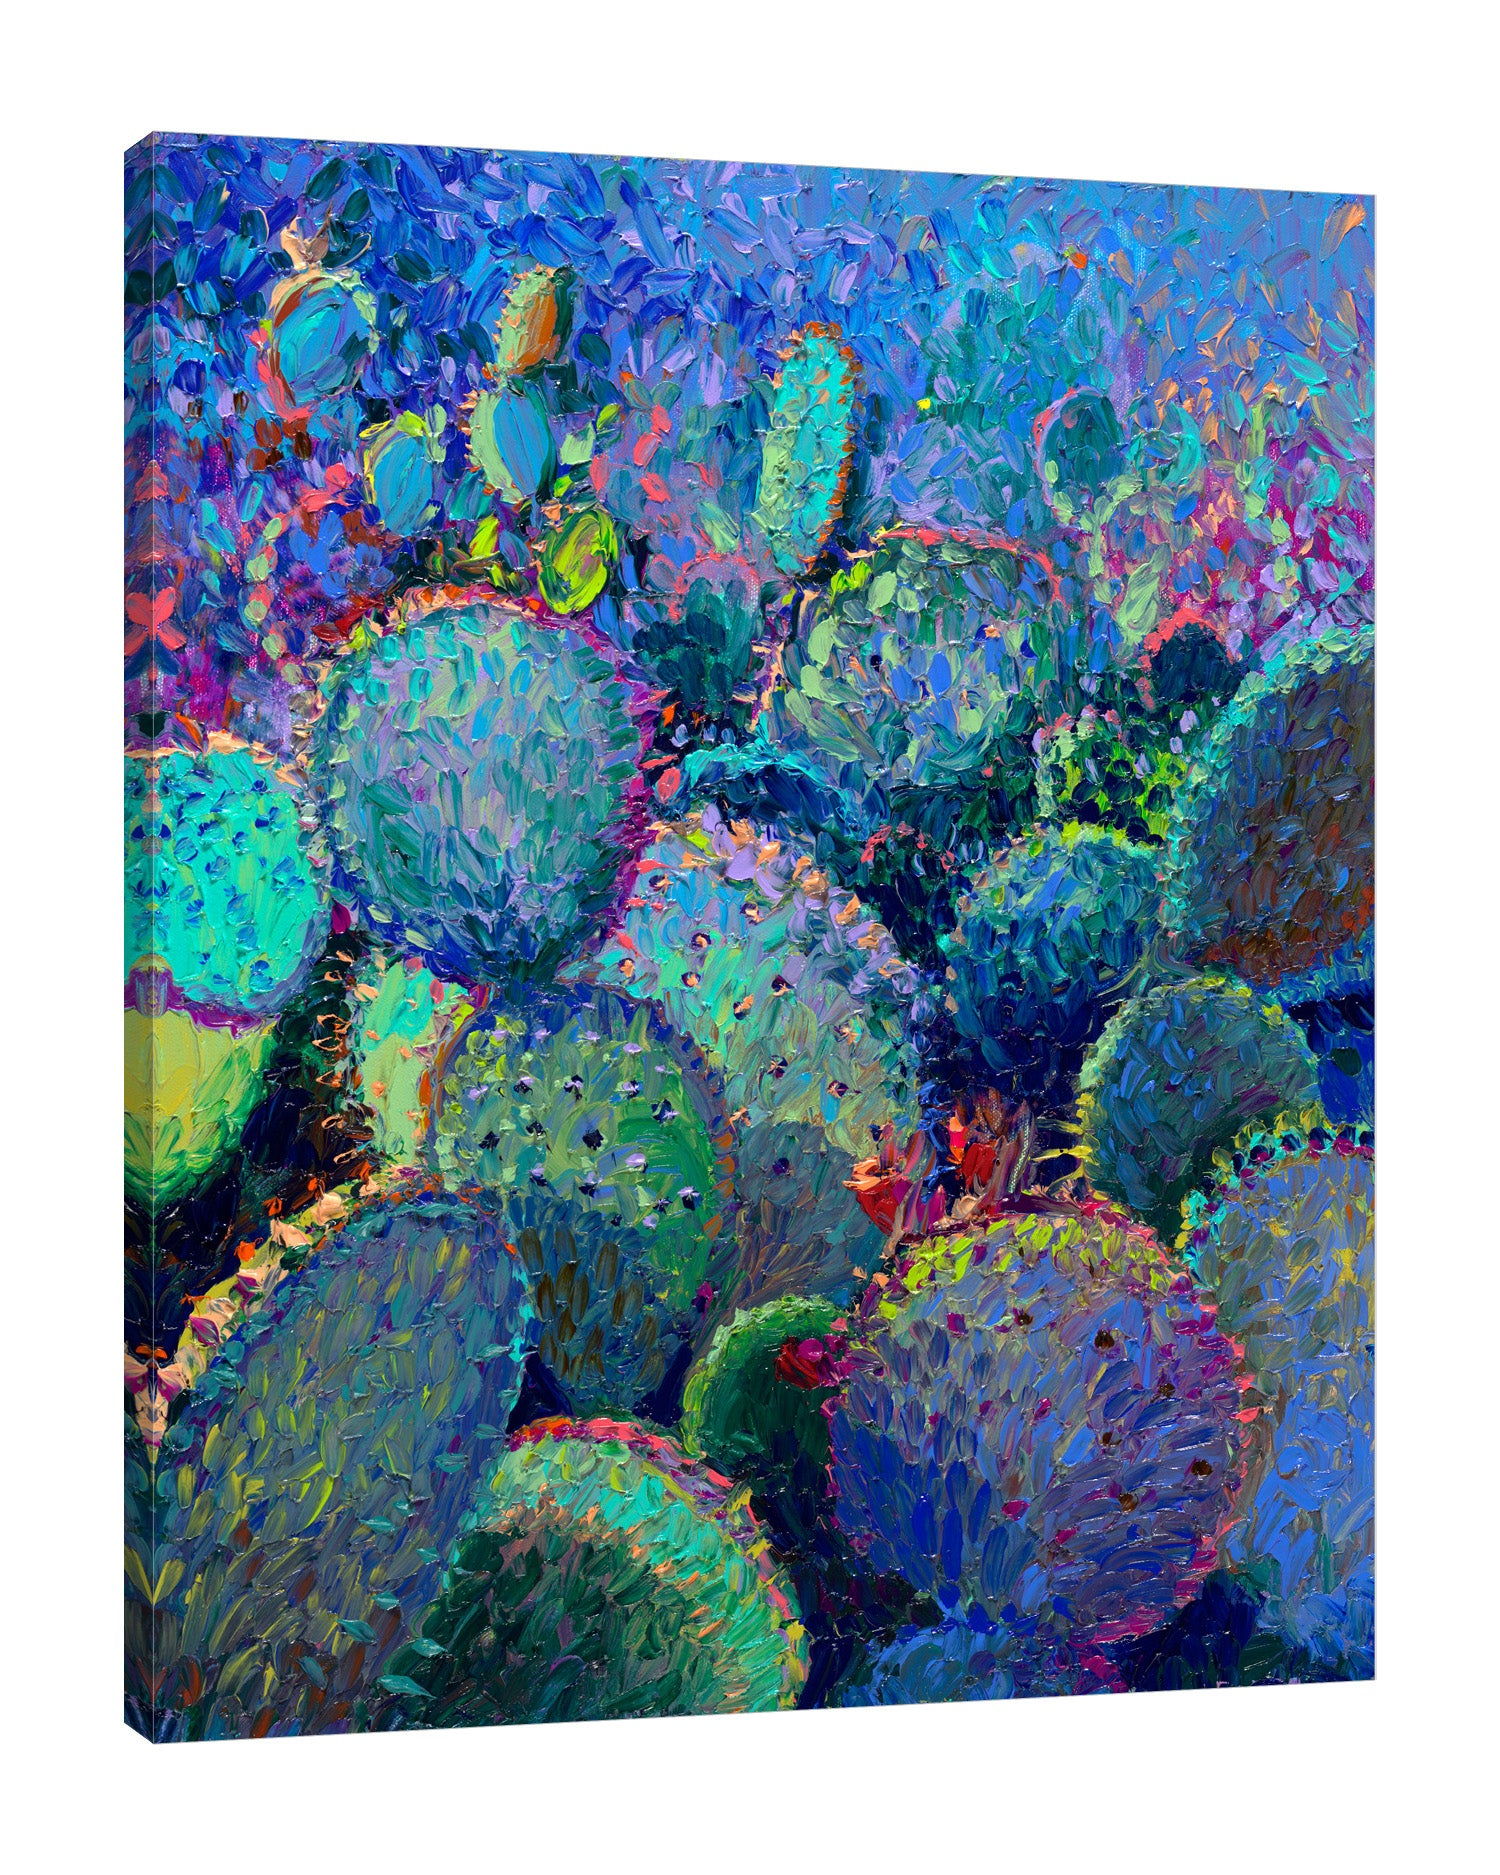 Iris-Scott,Modern & Contemporary,Landscape & Nature,Impressionism,surreal,finger paint,nature,scenic,landscape,floral,cactus,,